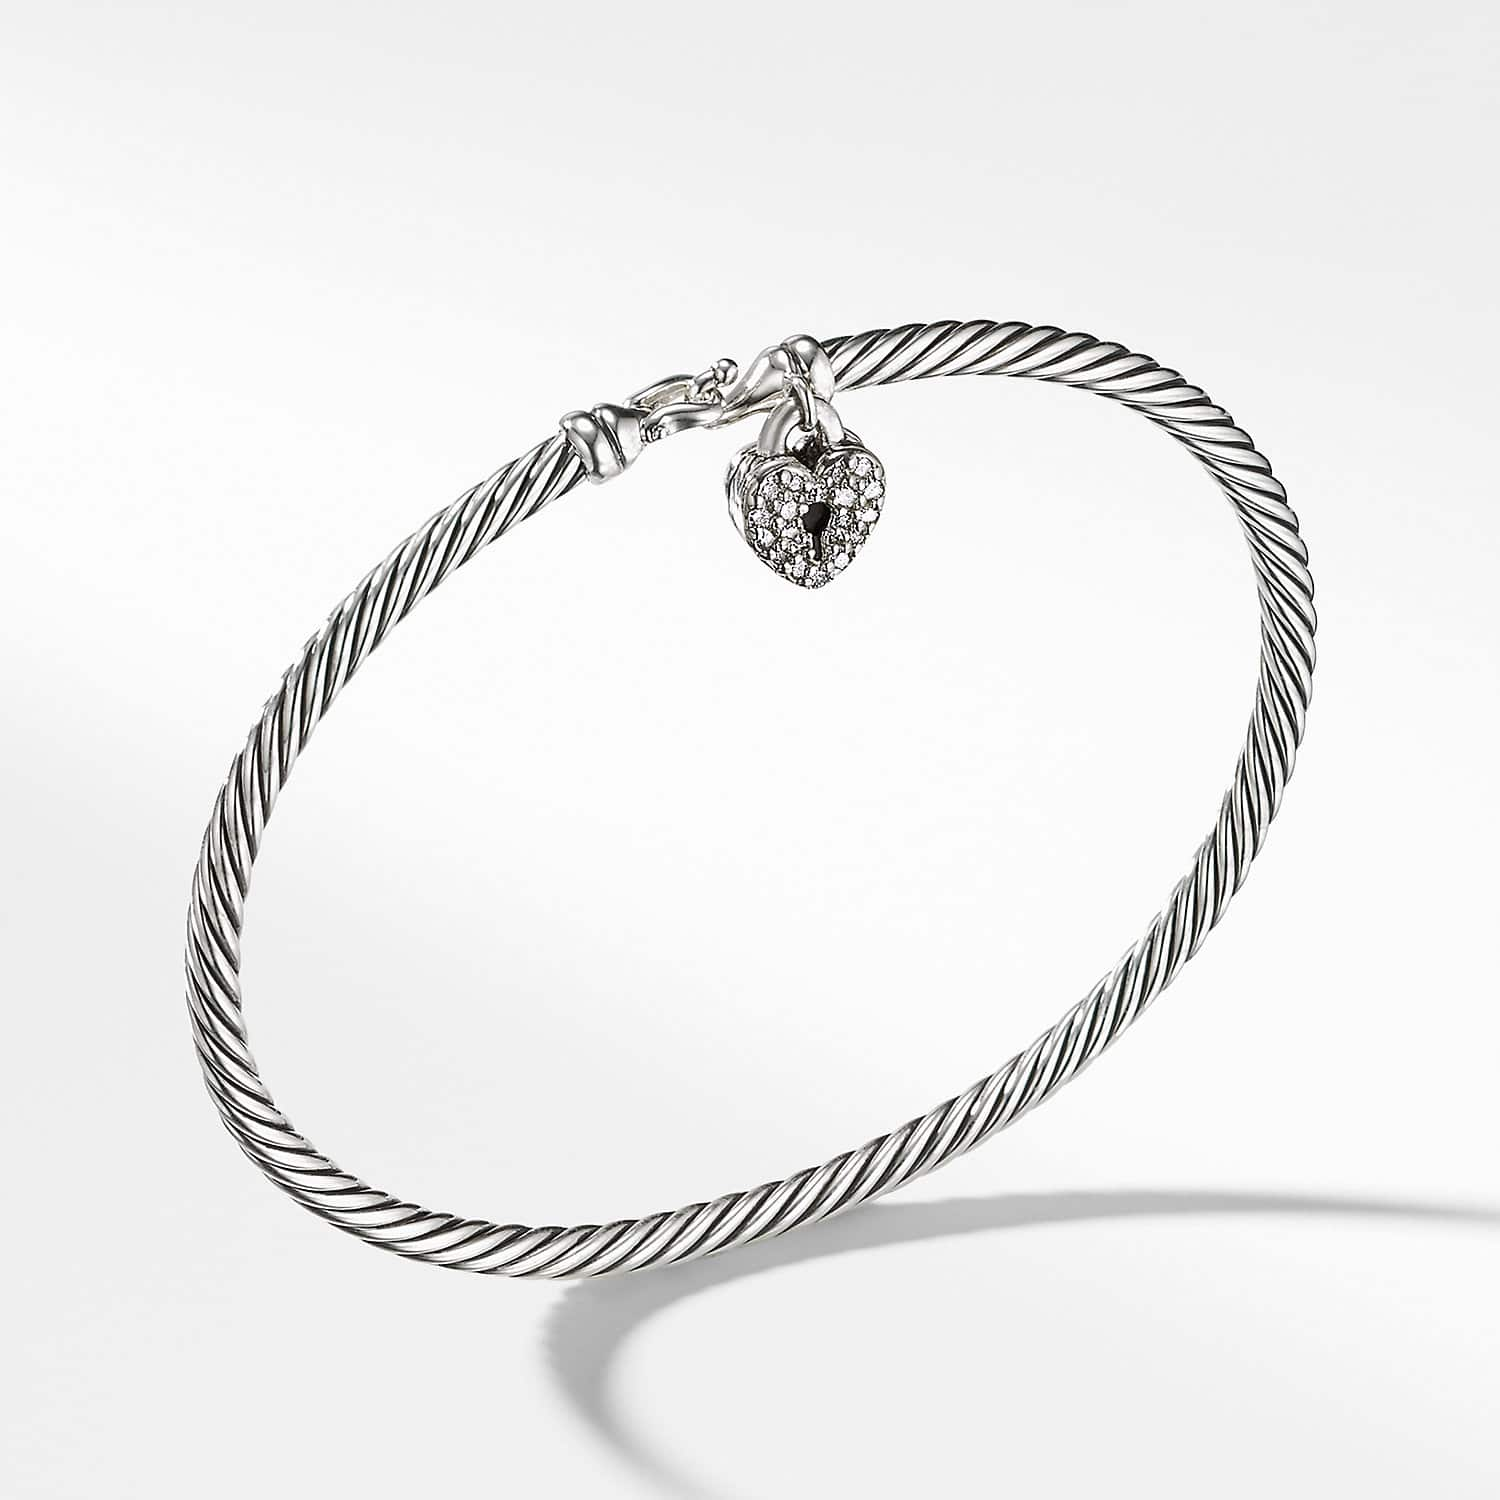 Cable Collectibles Heart Lock Bracelet With Diamonds 3mm Product Image